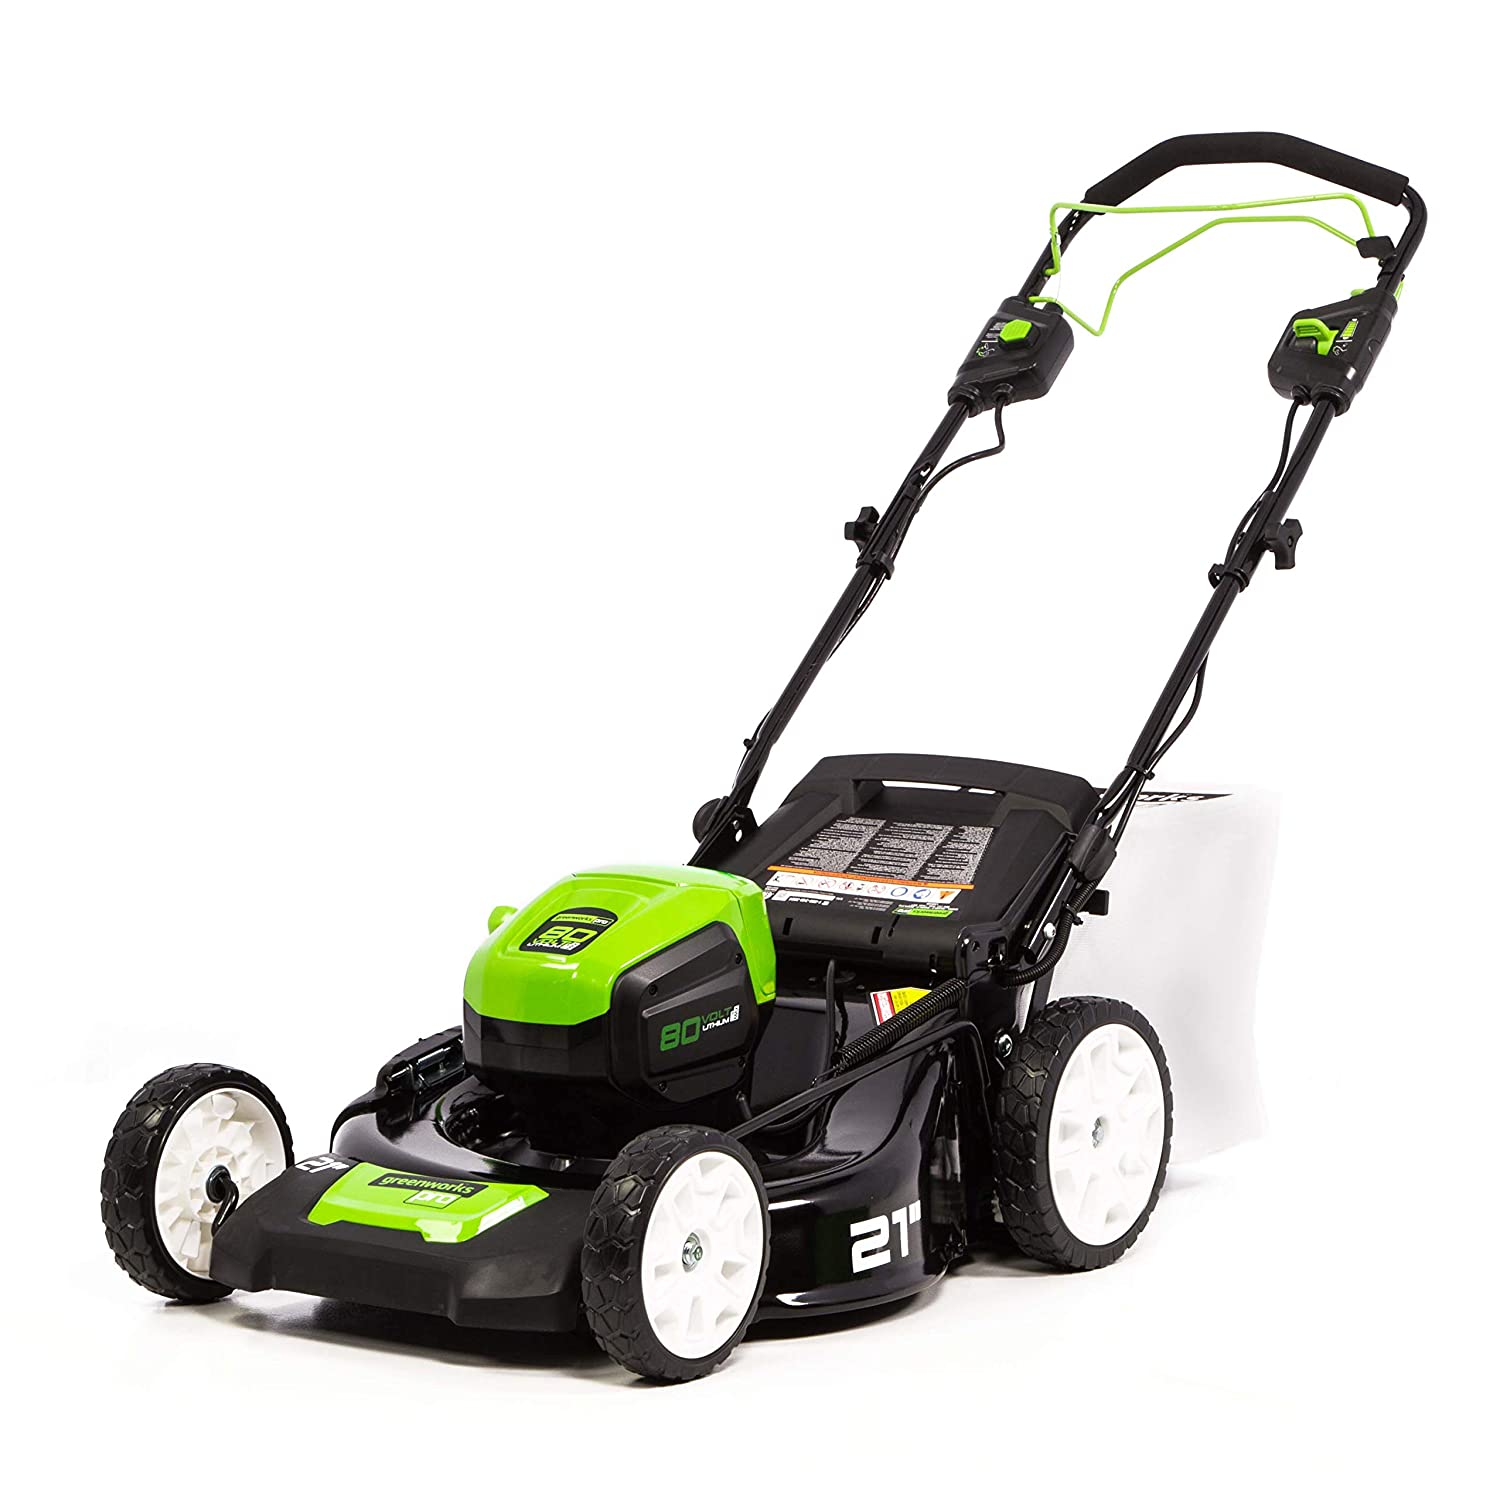 best cordless self-propelled lawn mower - Greenworks